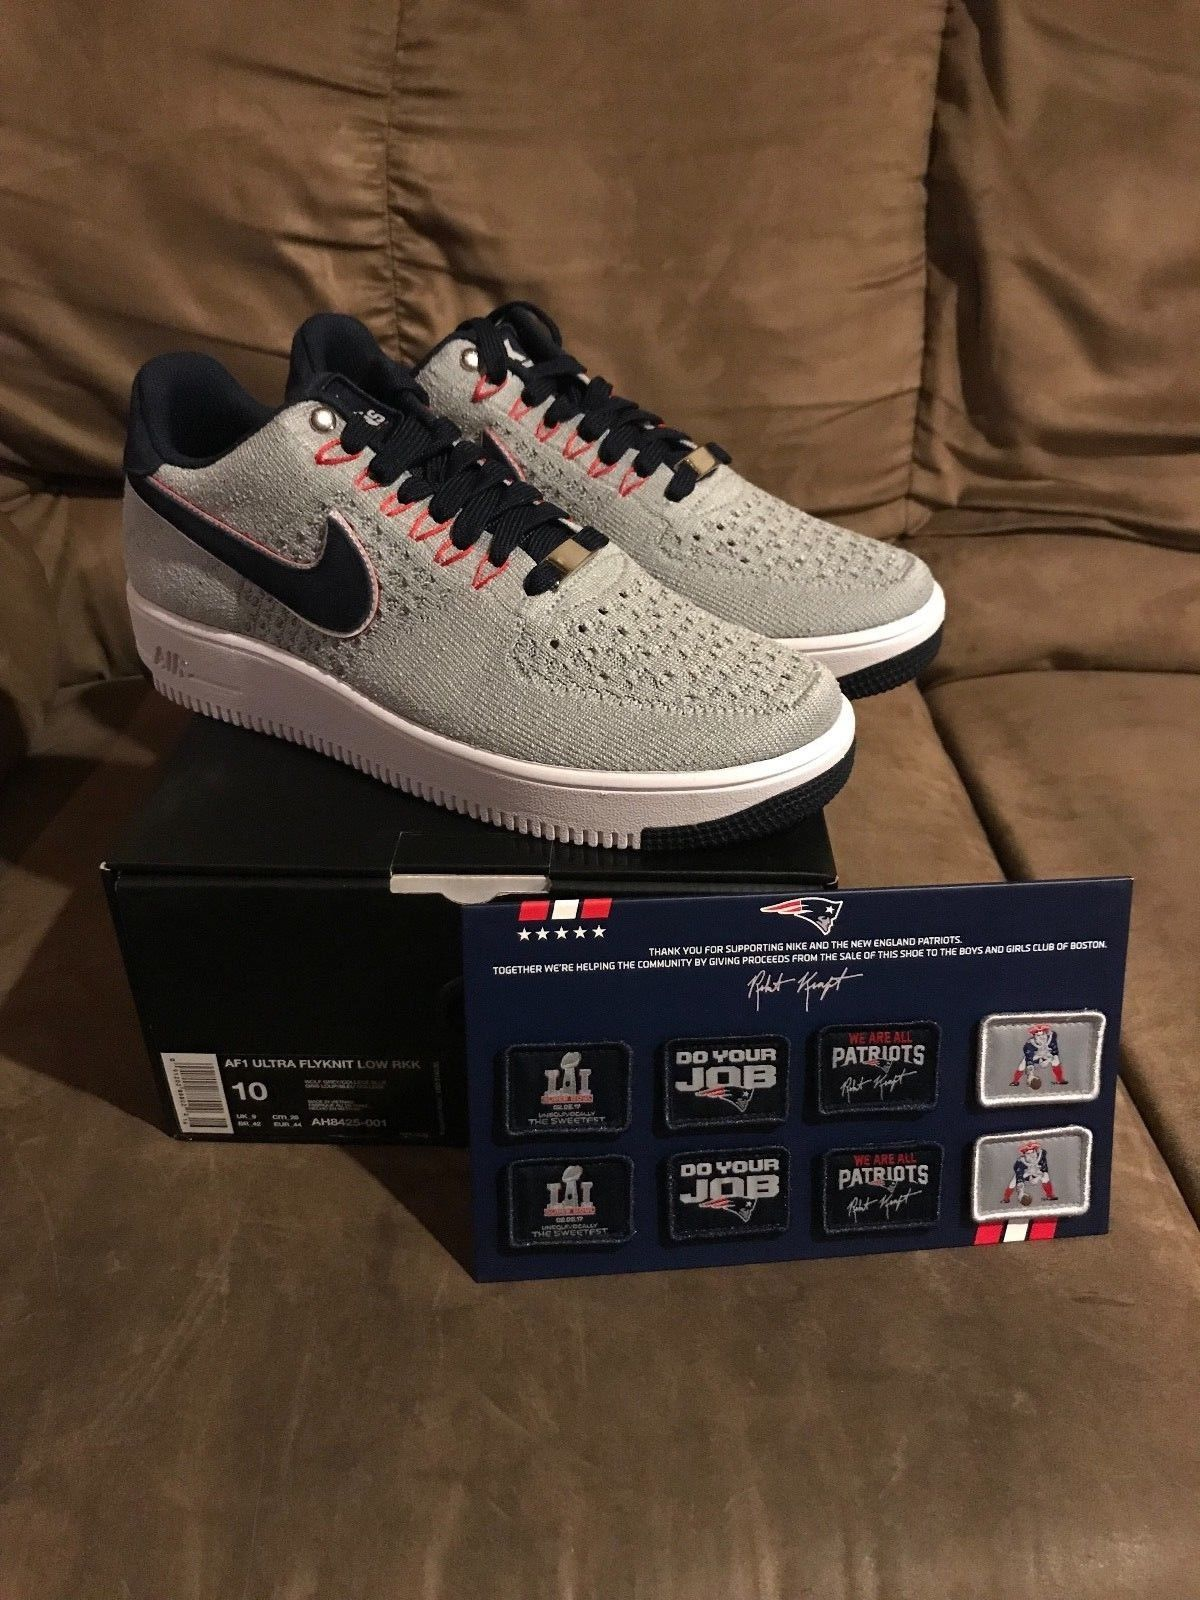 Nike Air Force One Flyknit Low 10.5 RKK New England Patriots